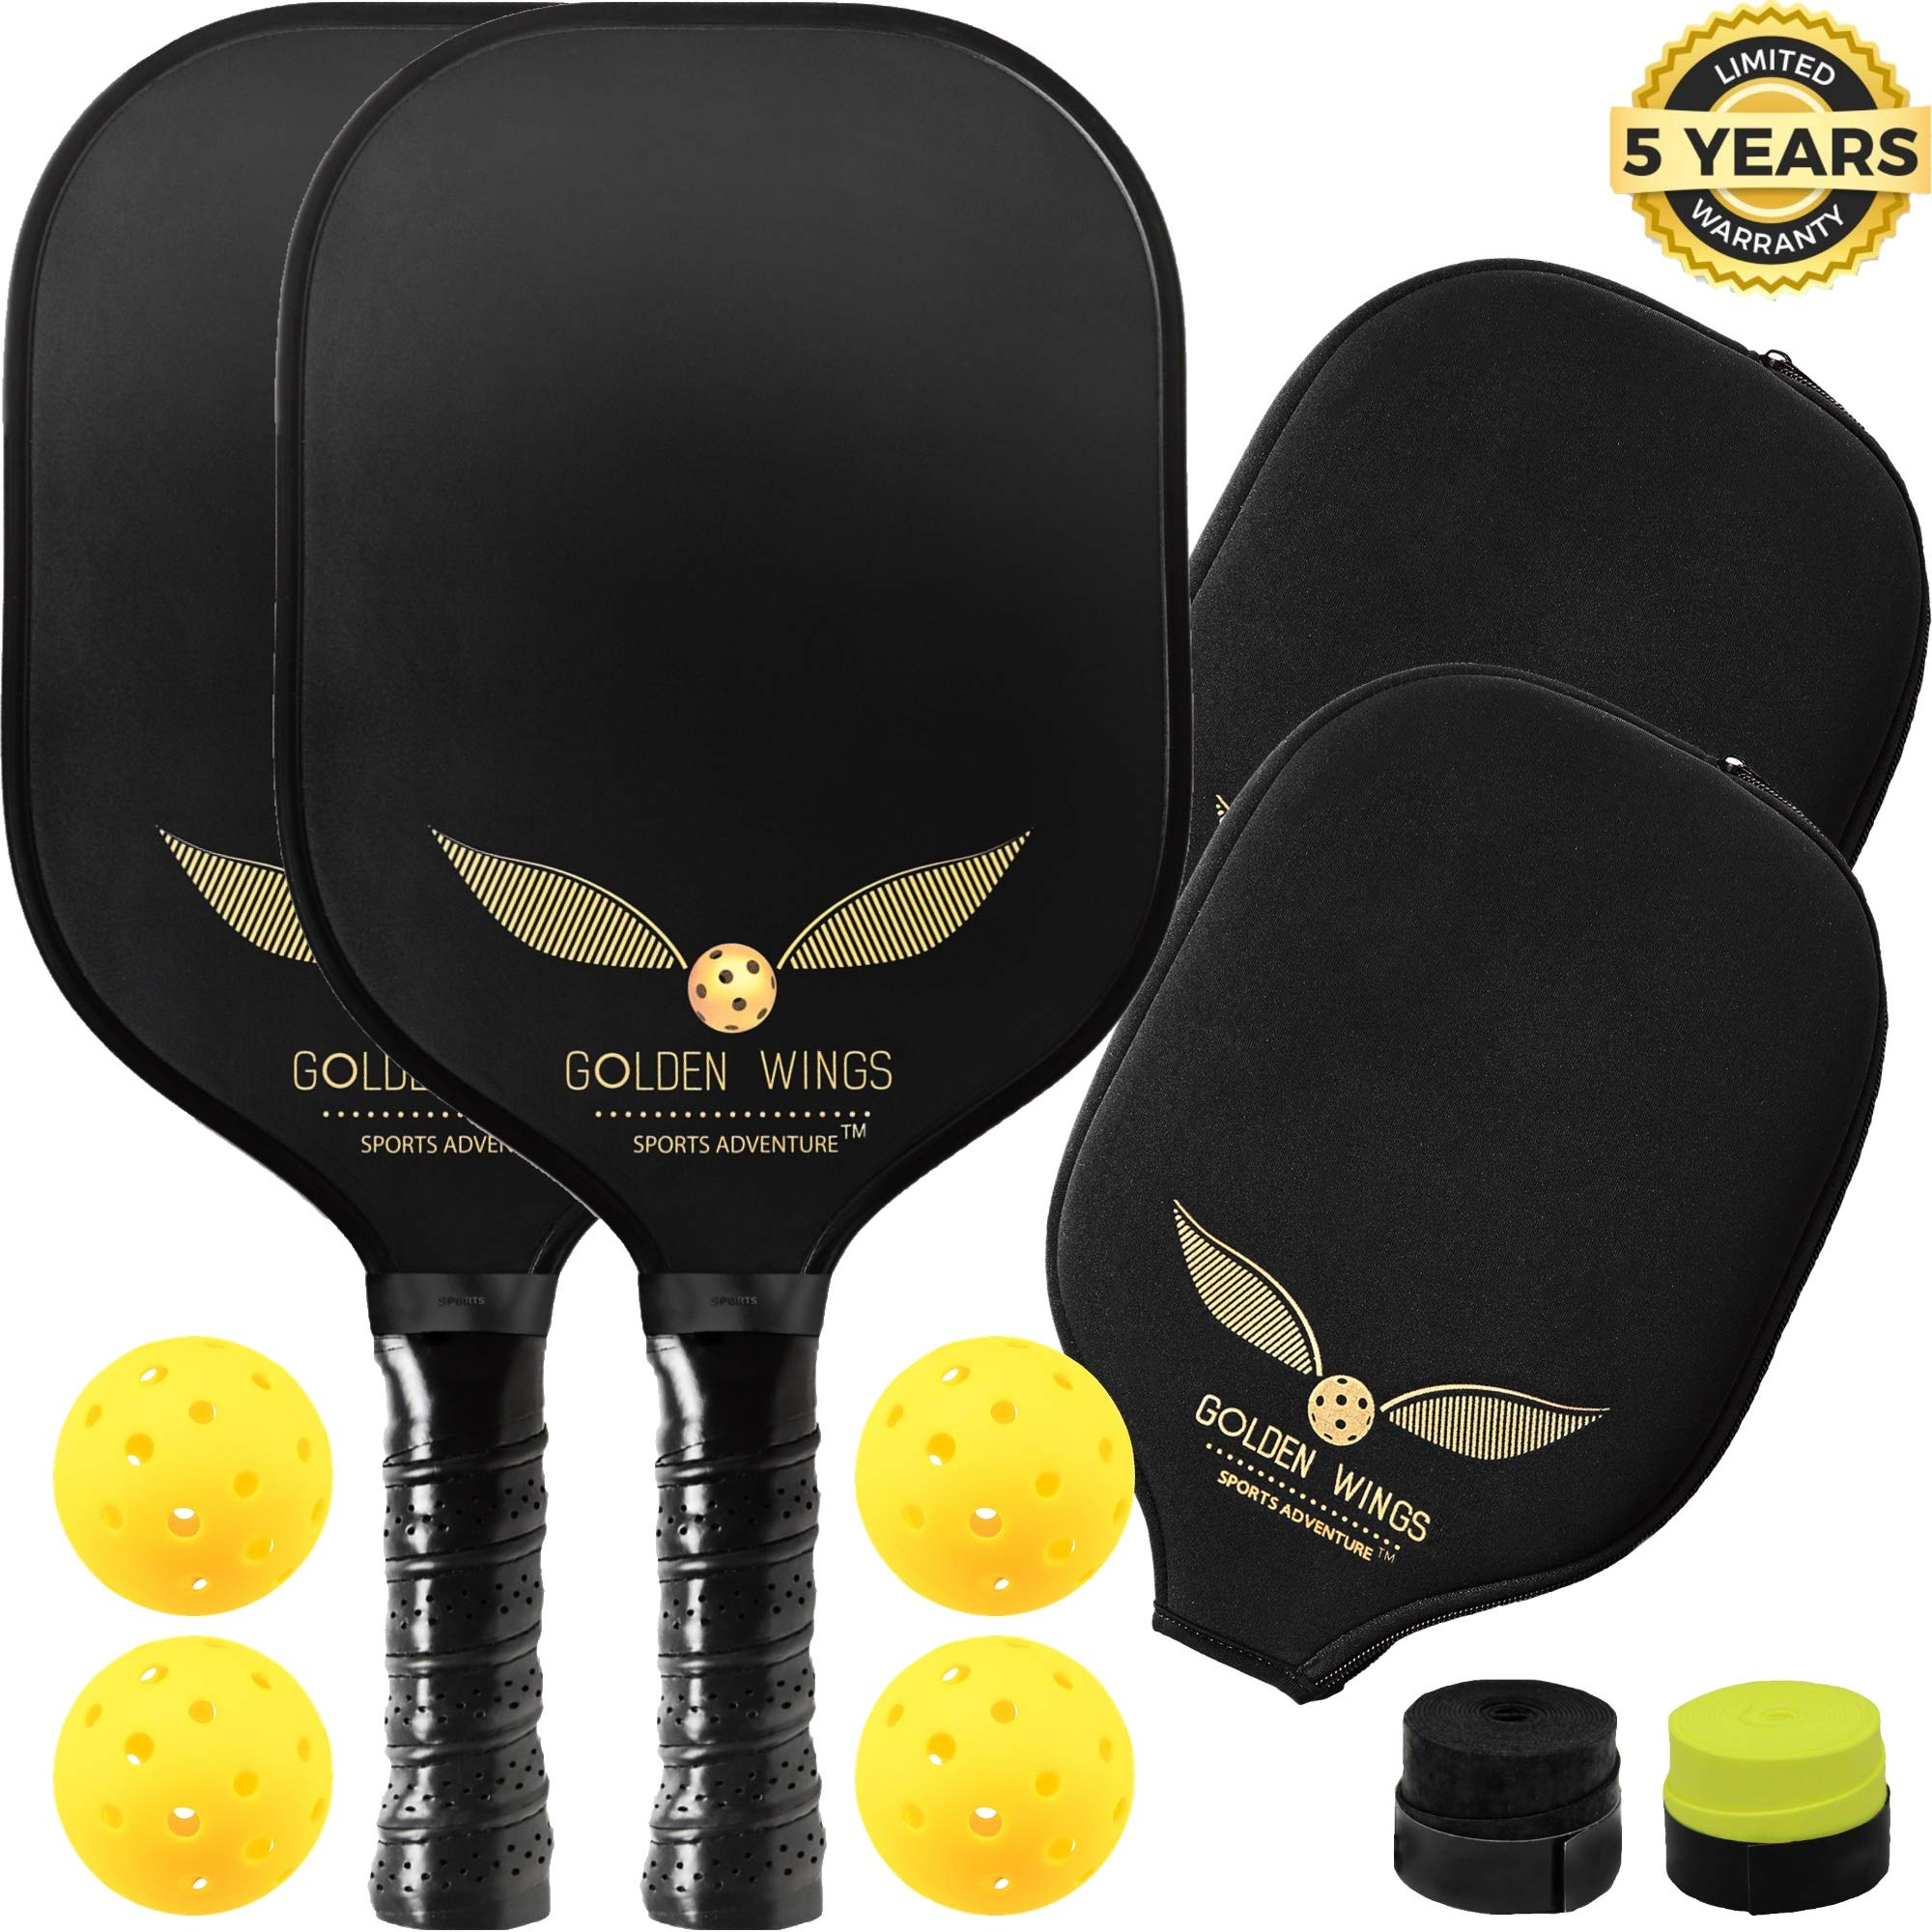 Pickleball Paddle Set of 2 - Graphite Pickleball Racket + 4 Pickle Balls + Cover + 2 overgrips - Composite Pickleball Paddles Bundle Honeycomb Pickle Ball Racket - Pickleball Racquet Game Sets by SPORTS ADVENTURE